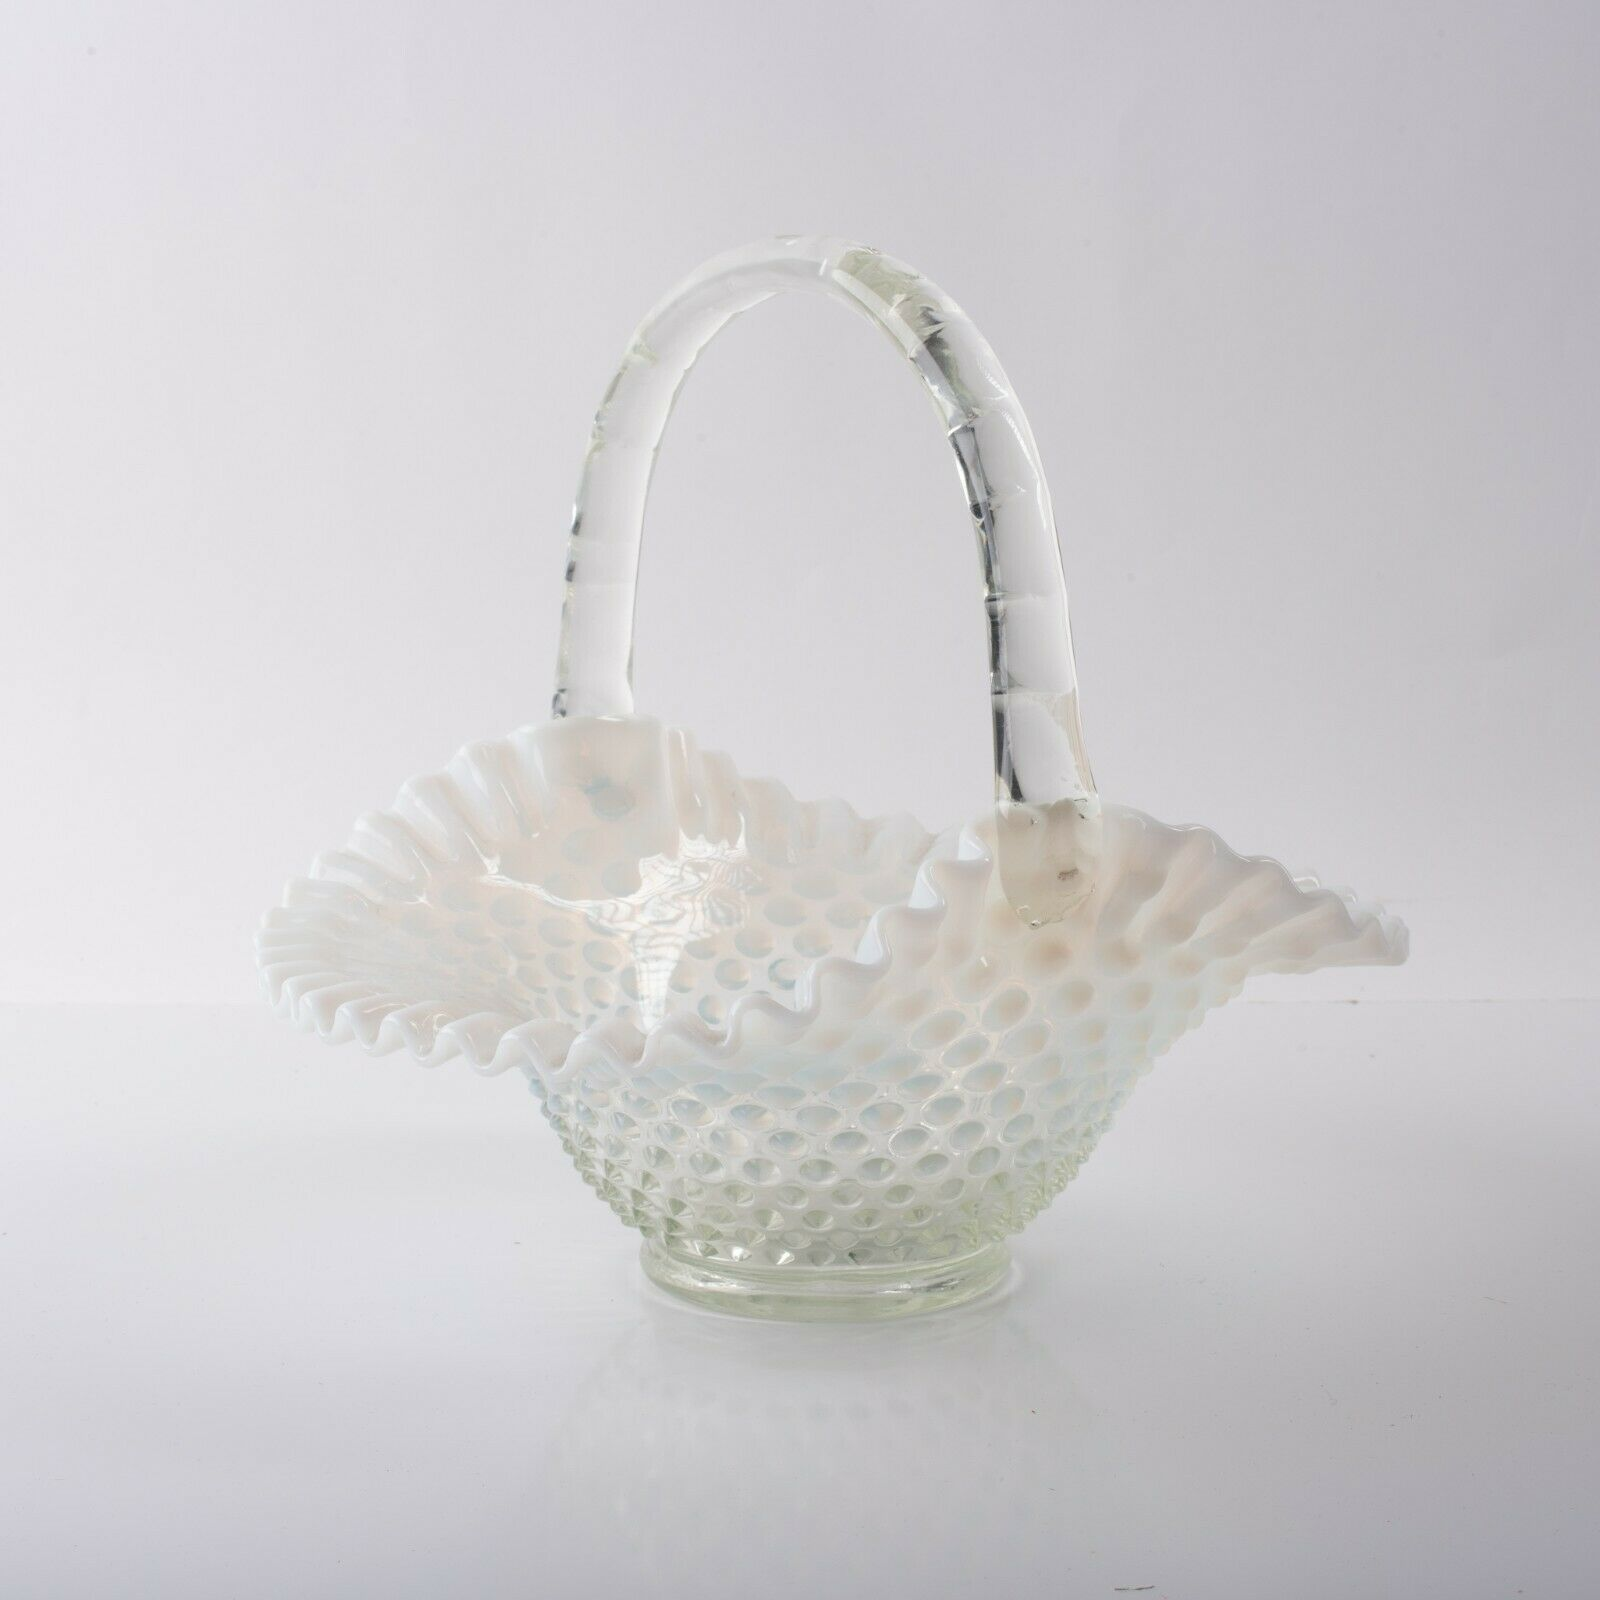 Fenton Opalescent Pale Blue White Hobnail Basket Clear Bamboo Handle 9 in Large - $98.01